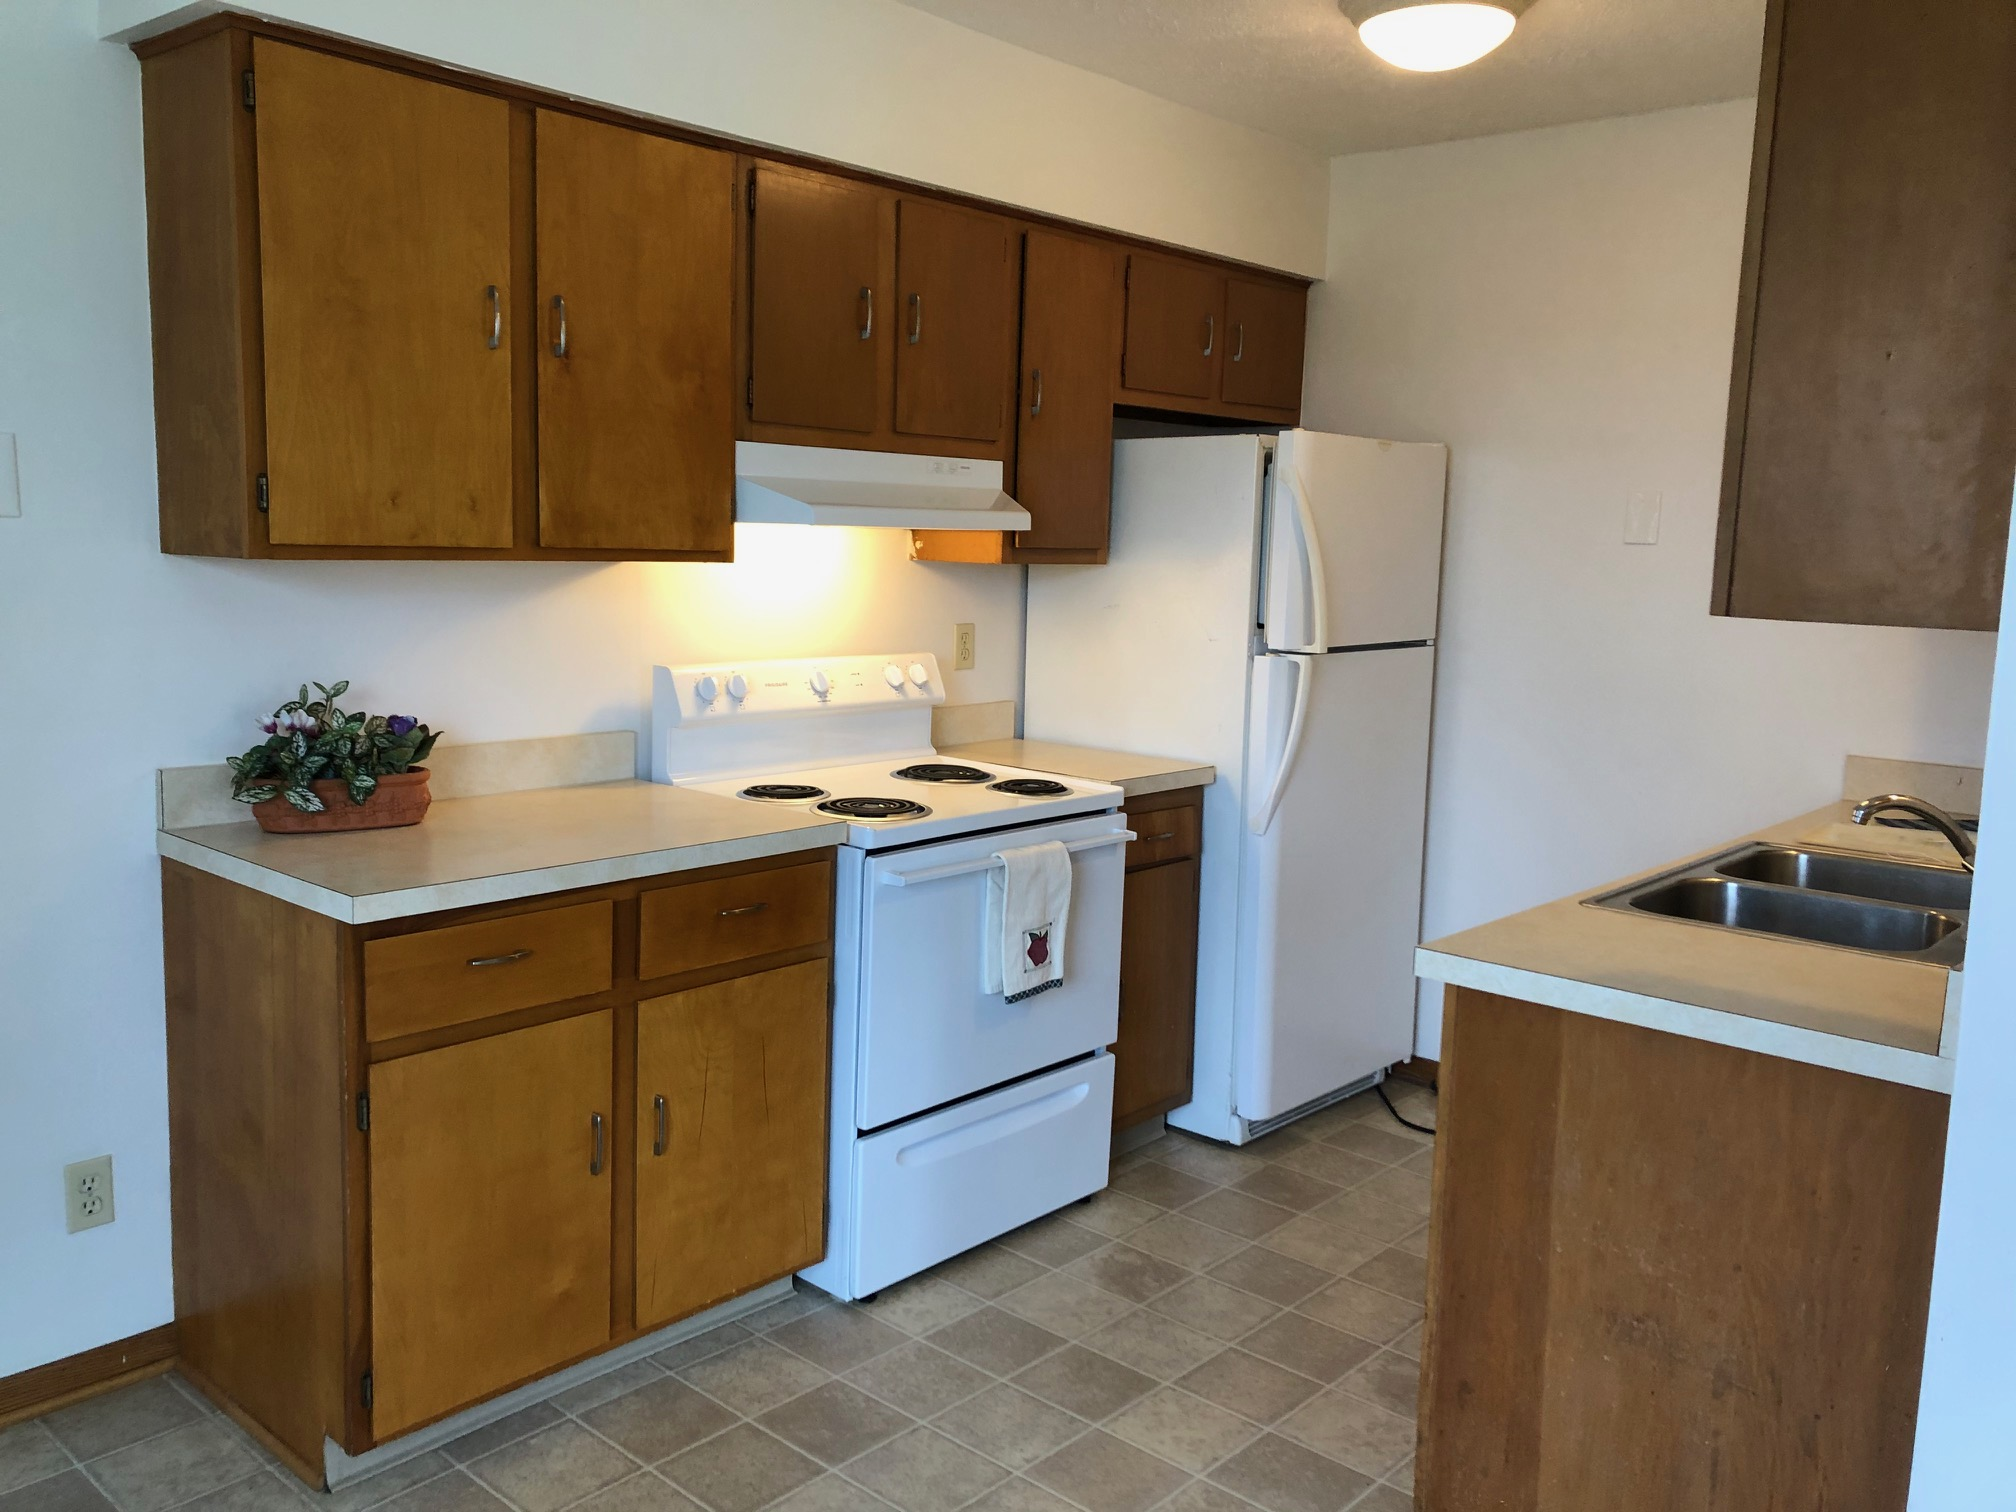 2 bedroom 1 bath apartment in east Barberton